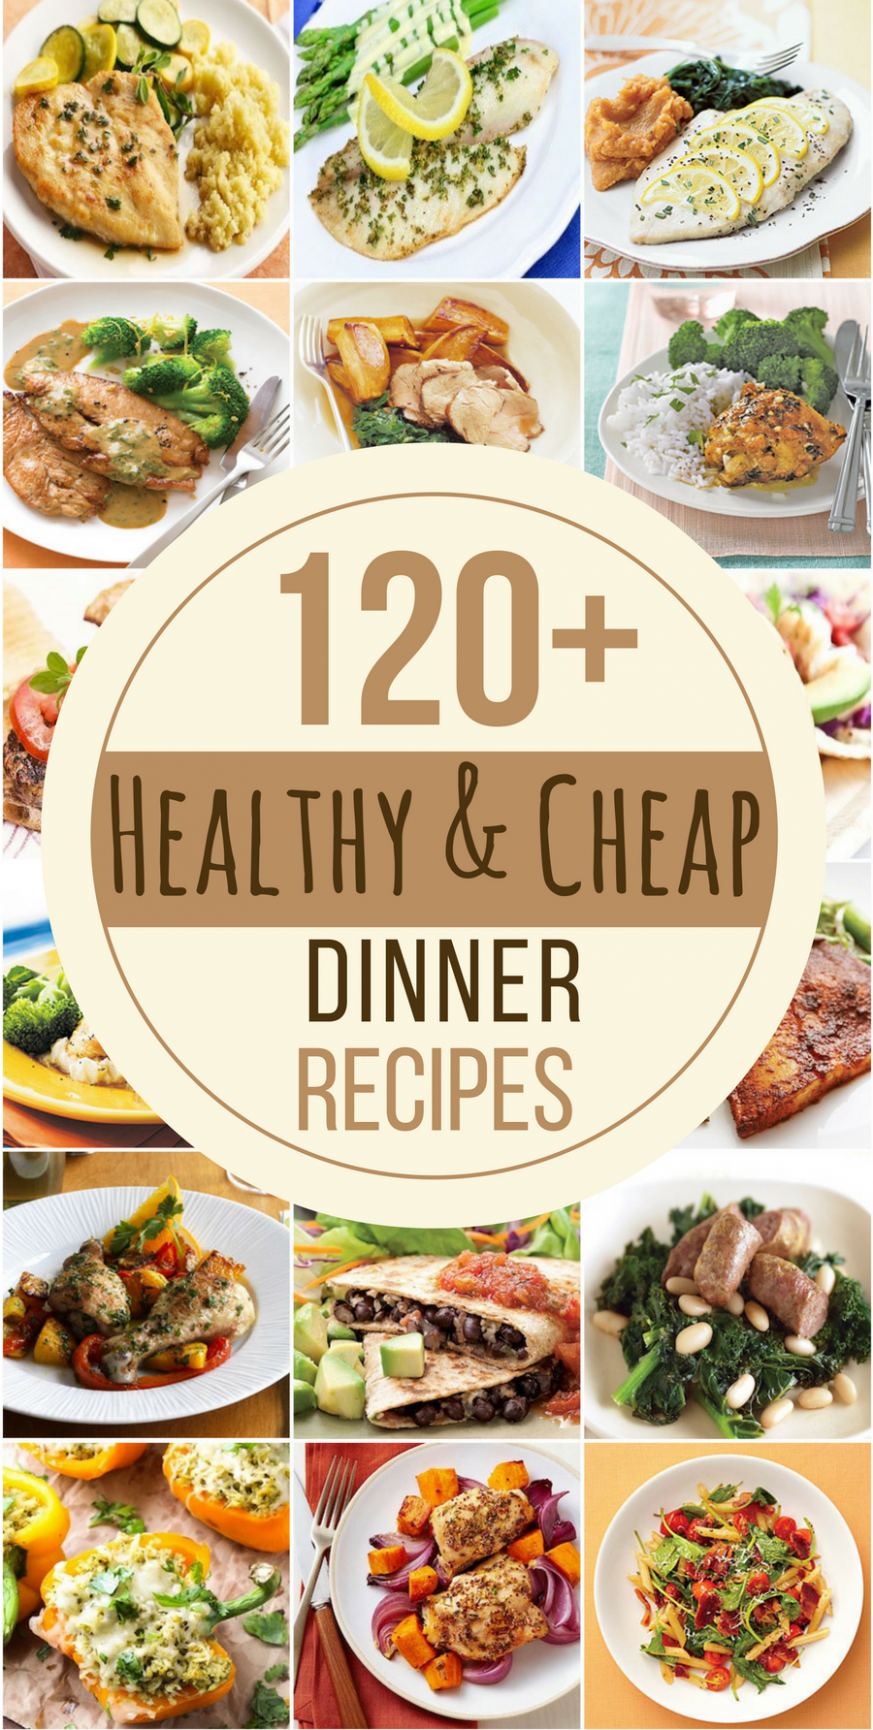 12 Cheap and Healthy Dinner Recipes | Cheap healthy dinners ..